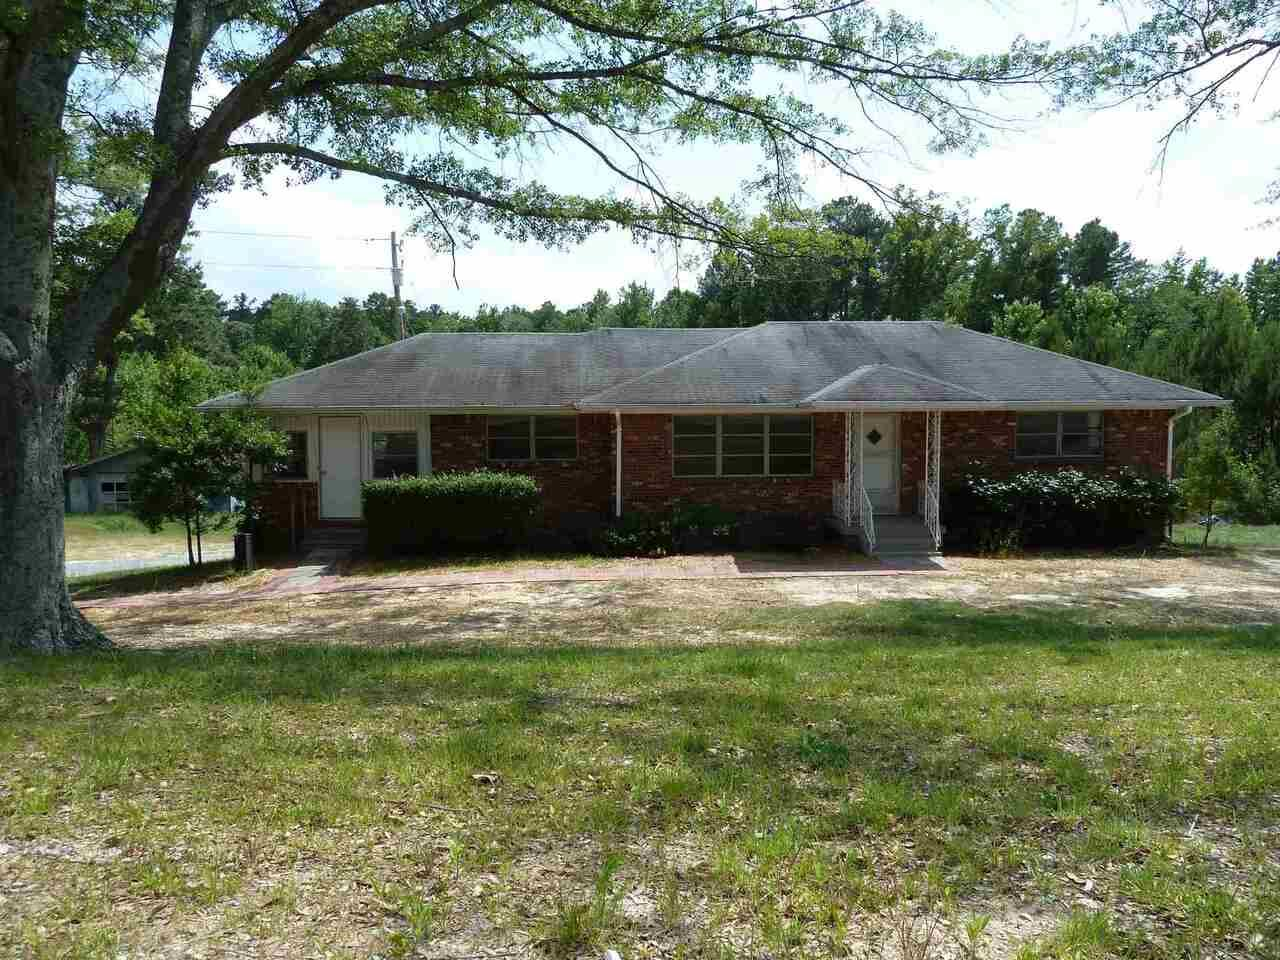 1225 Old Peachtree Rd, Lawrenceville, GA 30043 - MLS#: 8752726